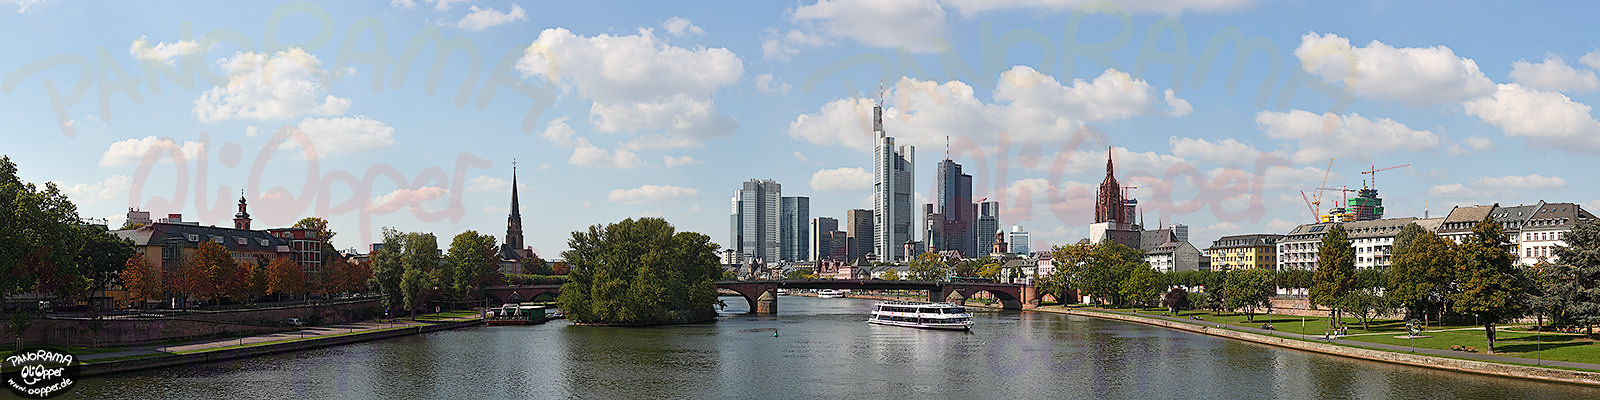 Panorama Frankfurt - Skyline am Tag - p304 - (c) by Oliver Opper